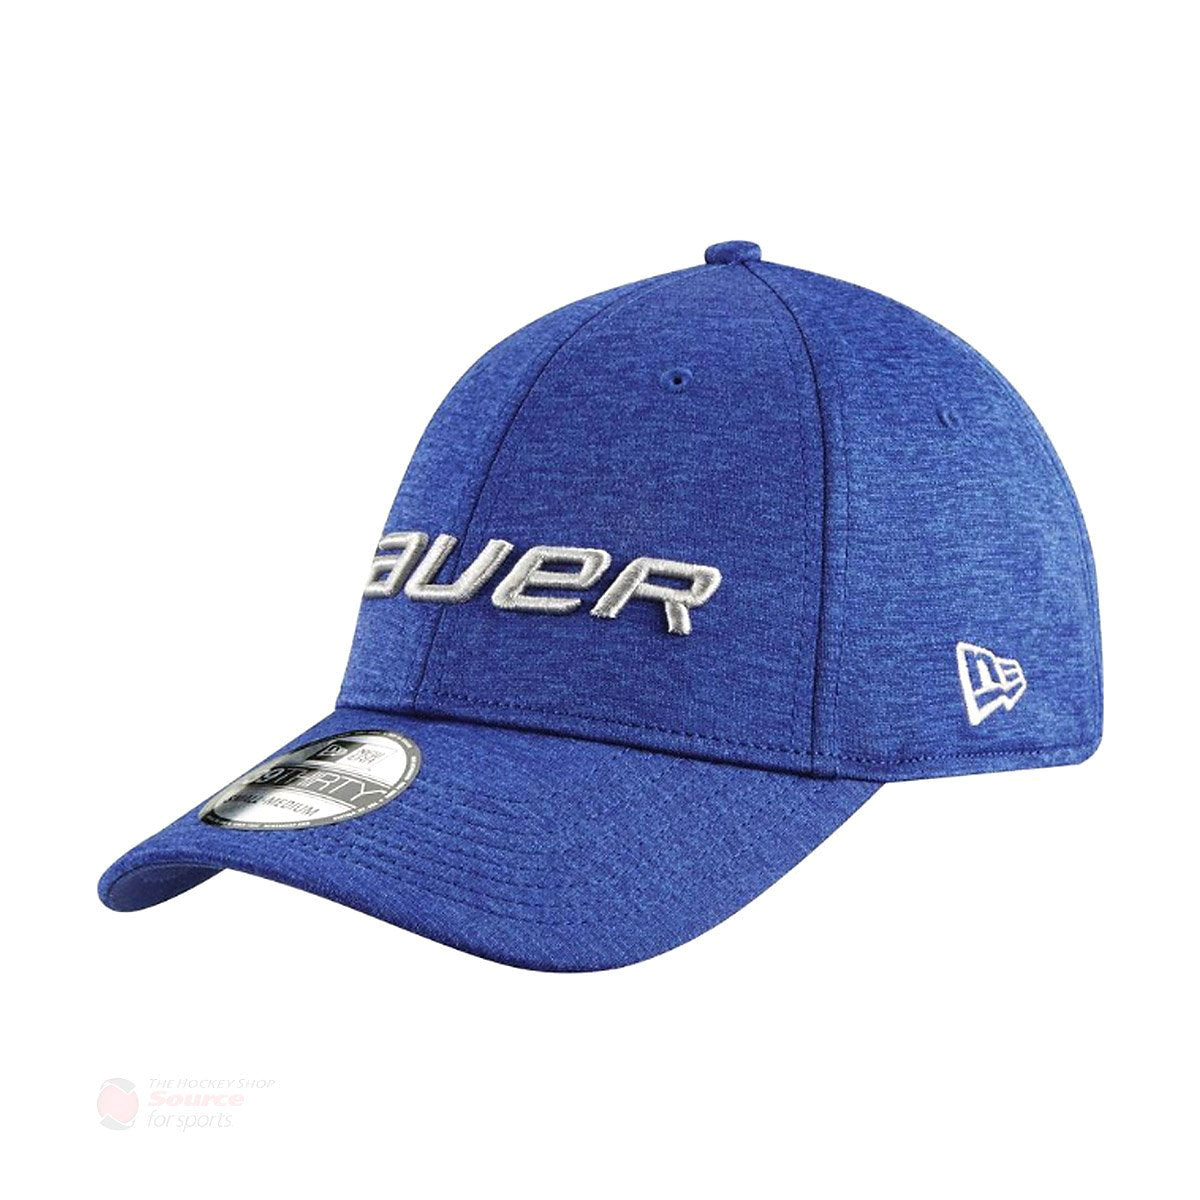 Bauer 39Thirty Flexfit Hat